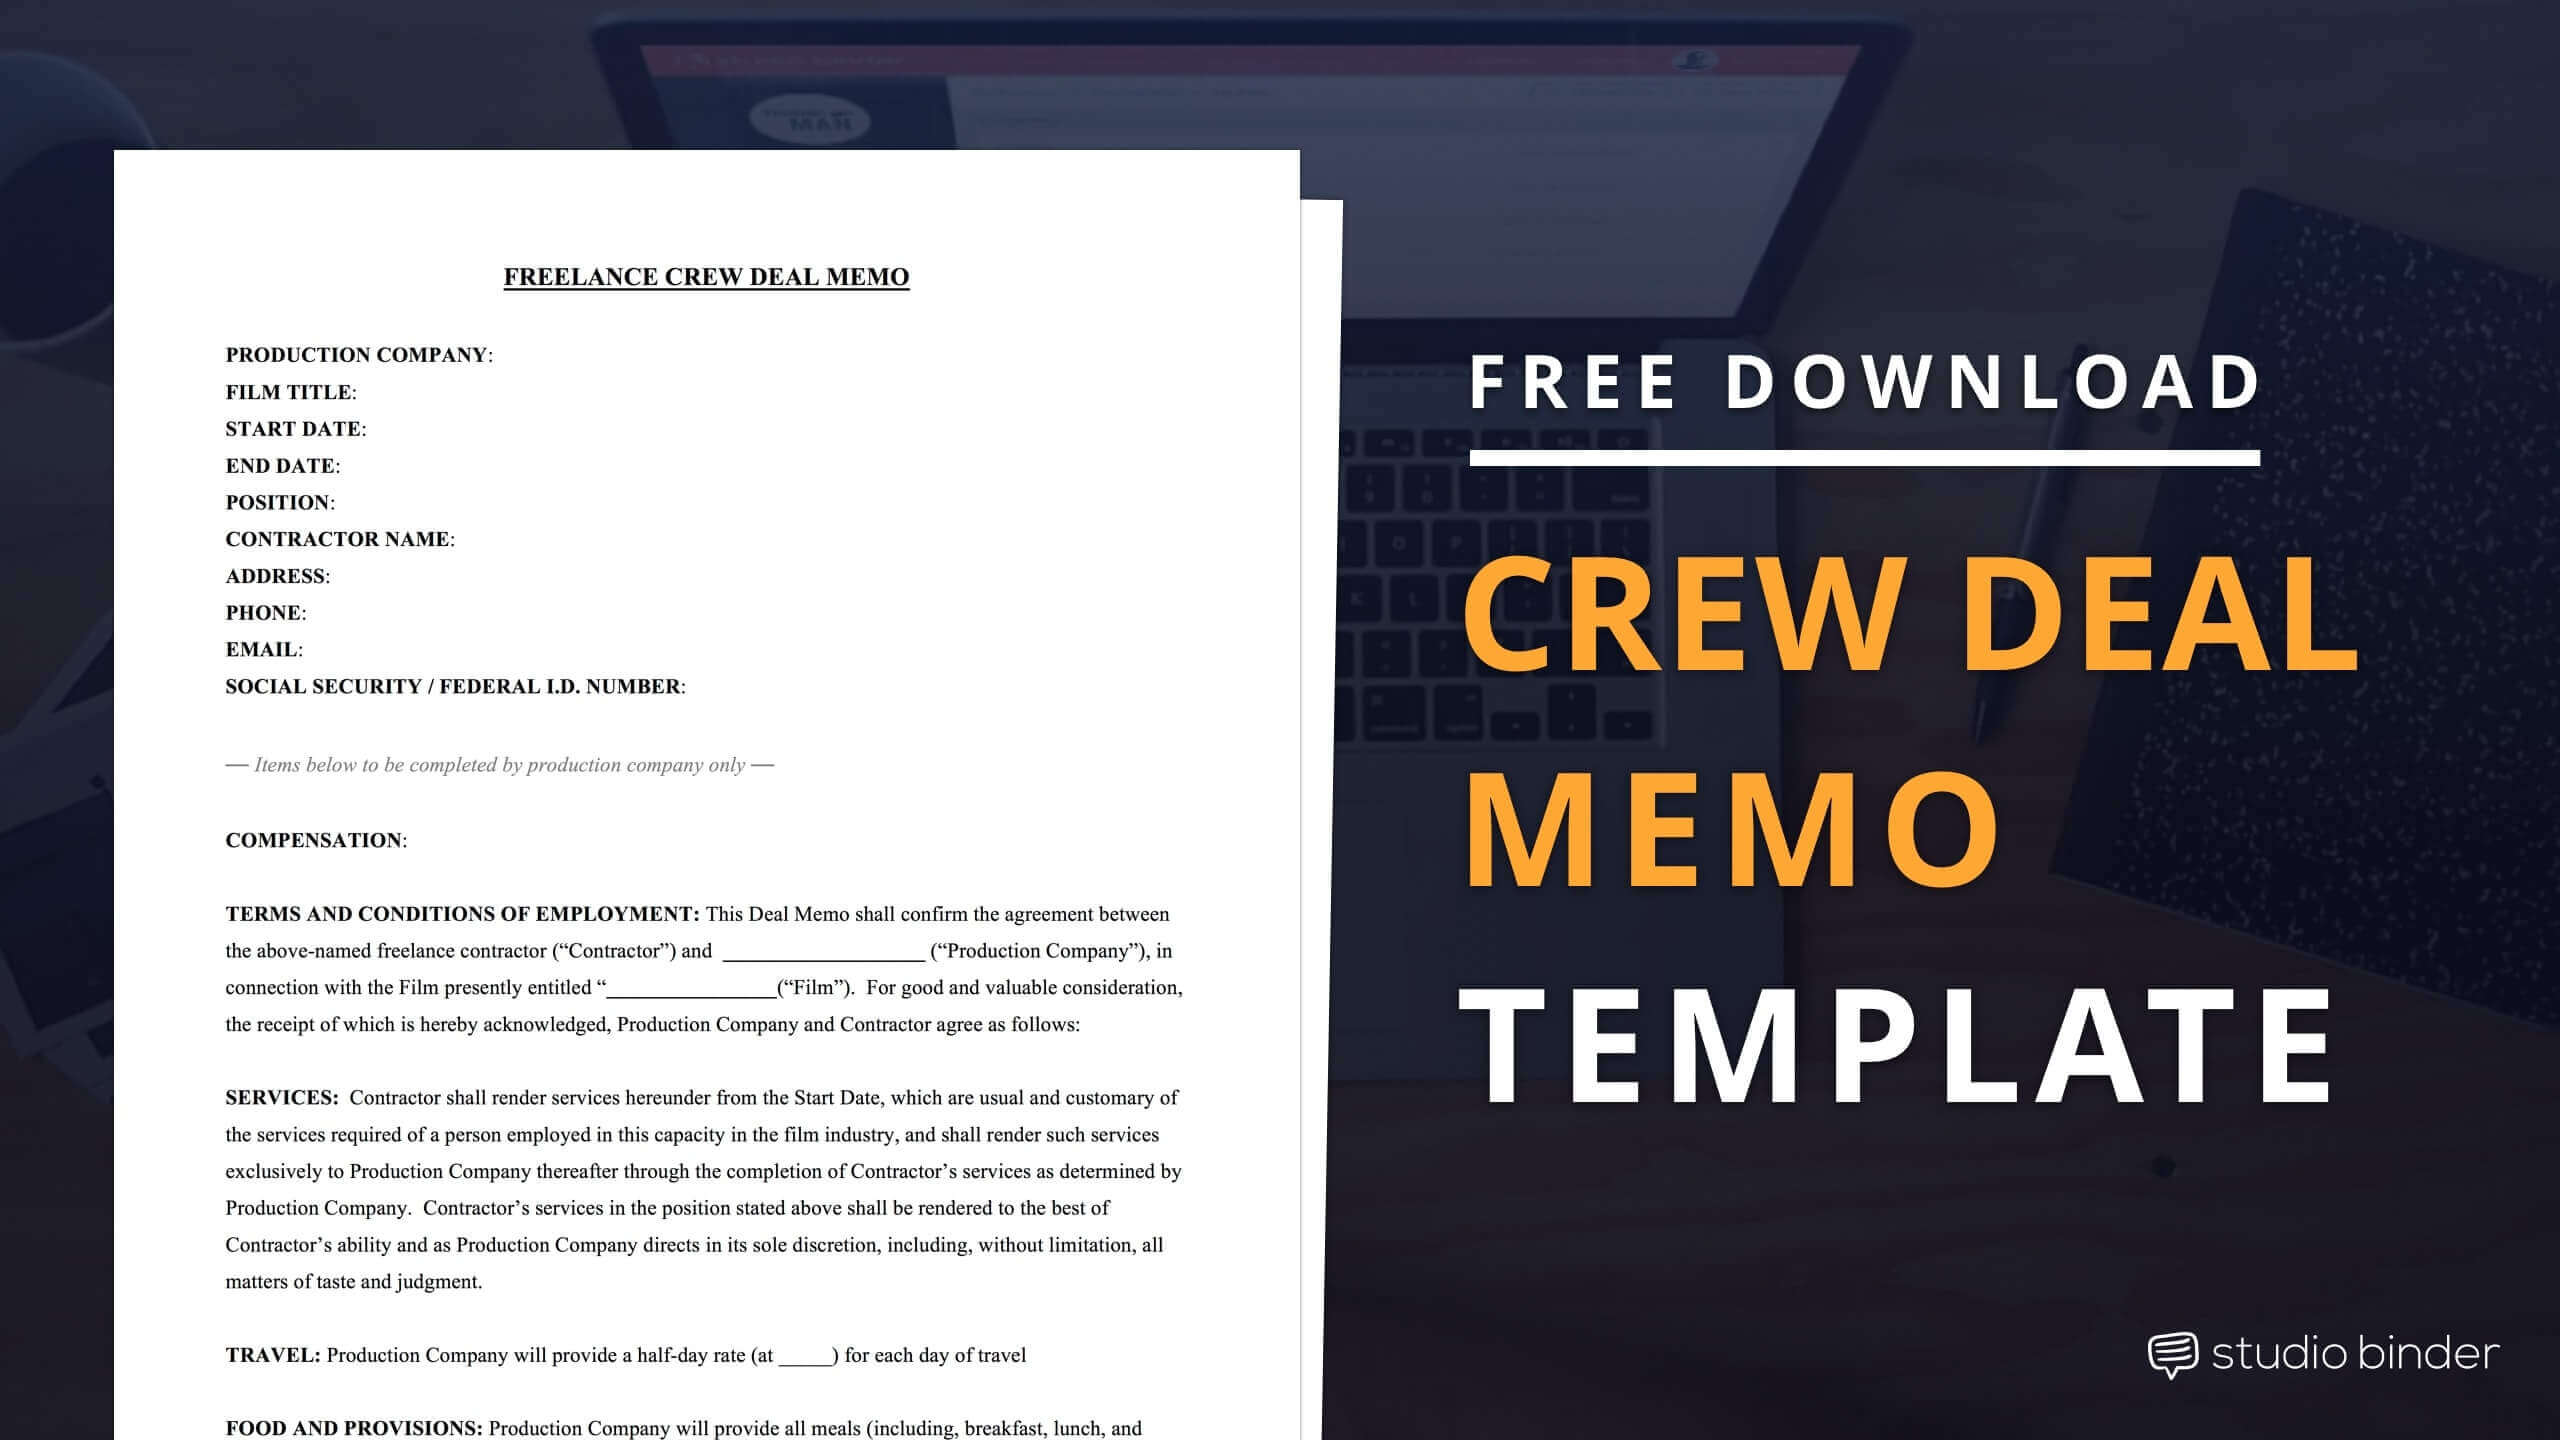 Crew Deal Memo Template Free Download - StudioBinder